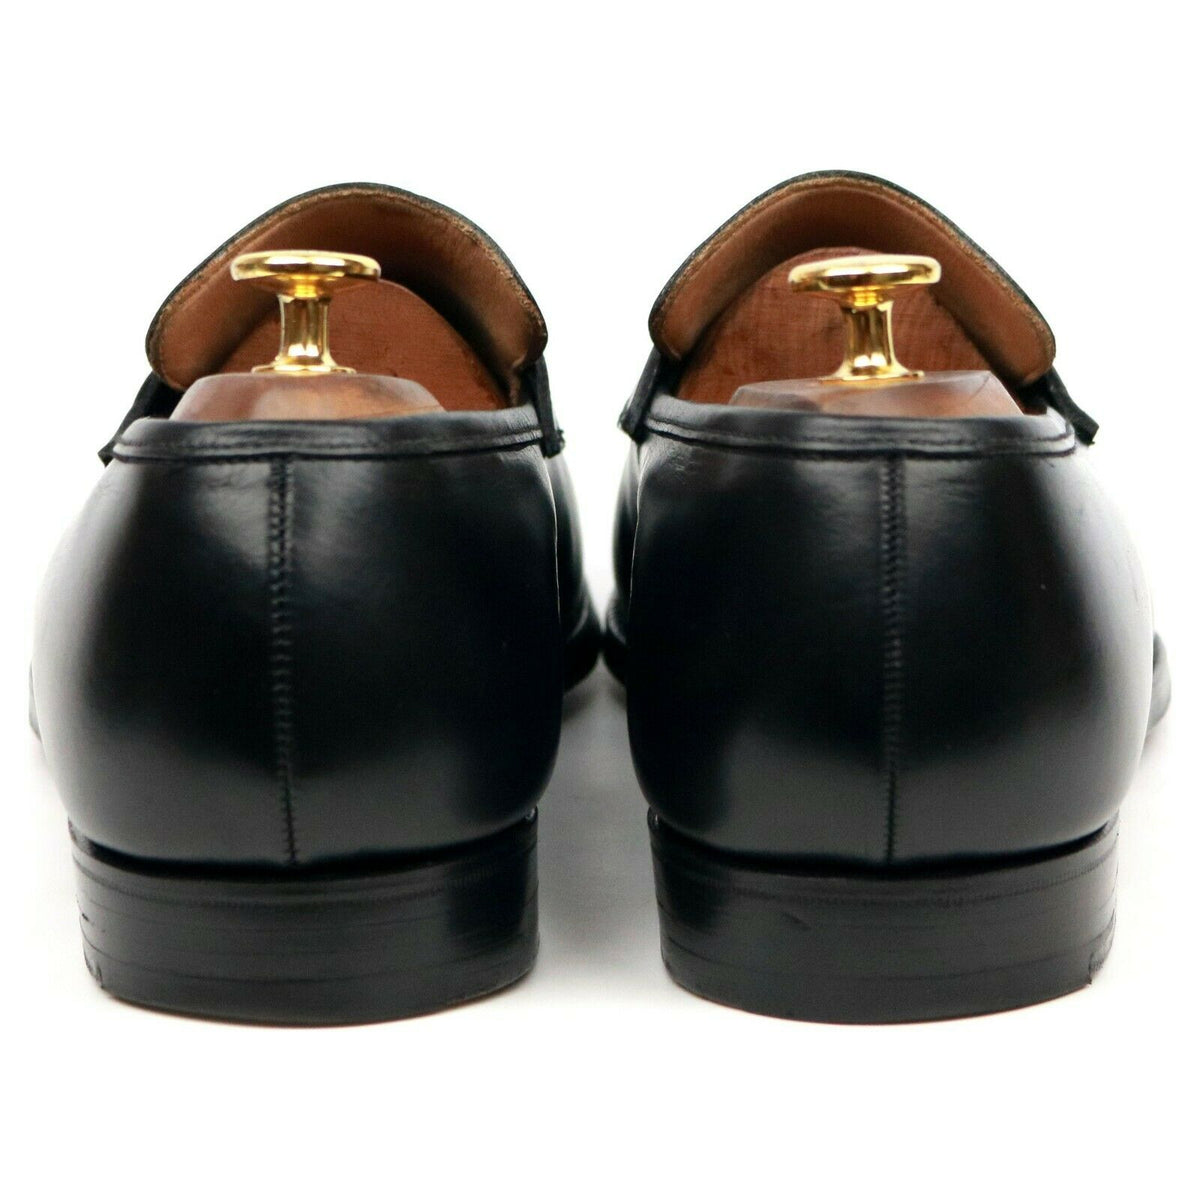 Crockett & Jones 'Merton' Black Leather Loafers UK 10 E